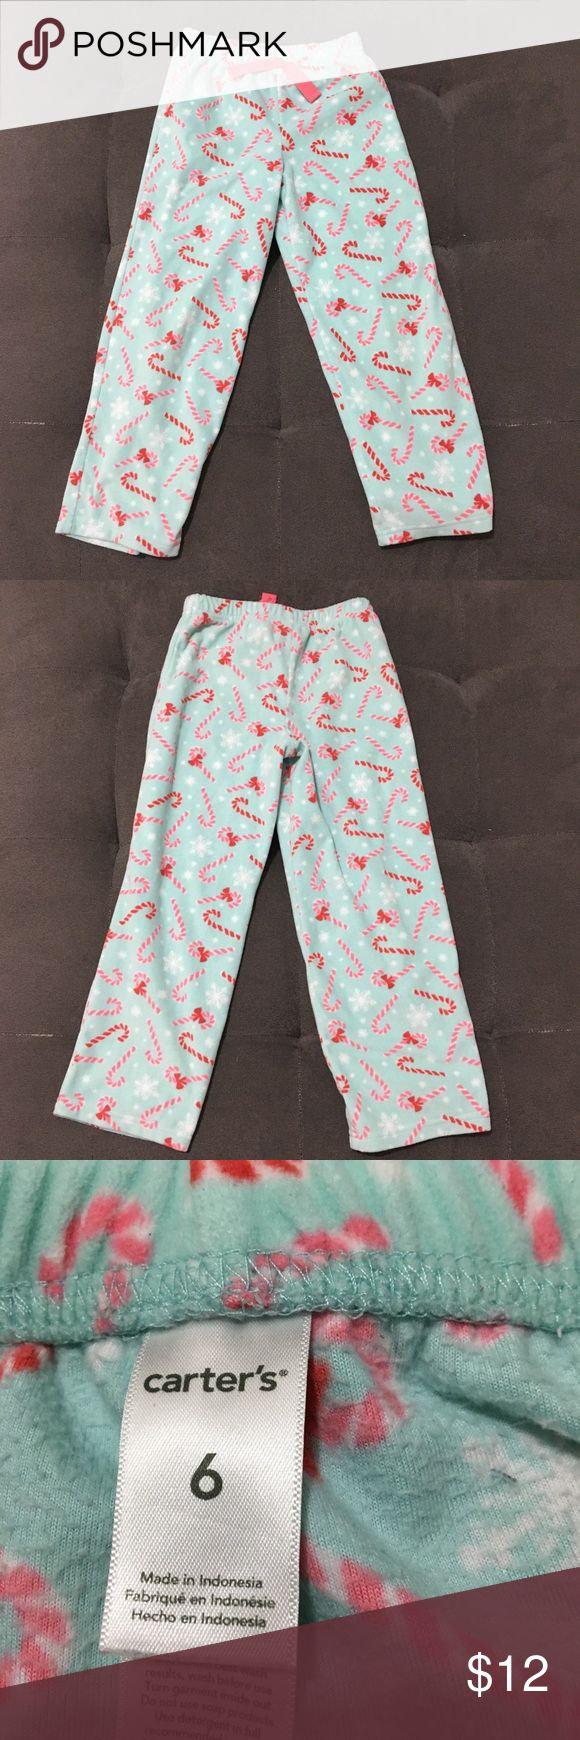 Carter's Christmas candy cane fleece pajama pants Carter's Christmas candy cane fleece pajama pants with elastic waist   Size 6  Good pre loved condition.   Bundle fav items for a personal discount. Offers are always welcome, too! No trades. Thank you! (17) Carter's Pajamas Pajama Bottoms